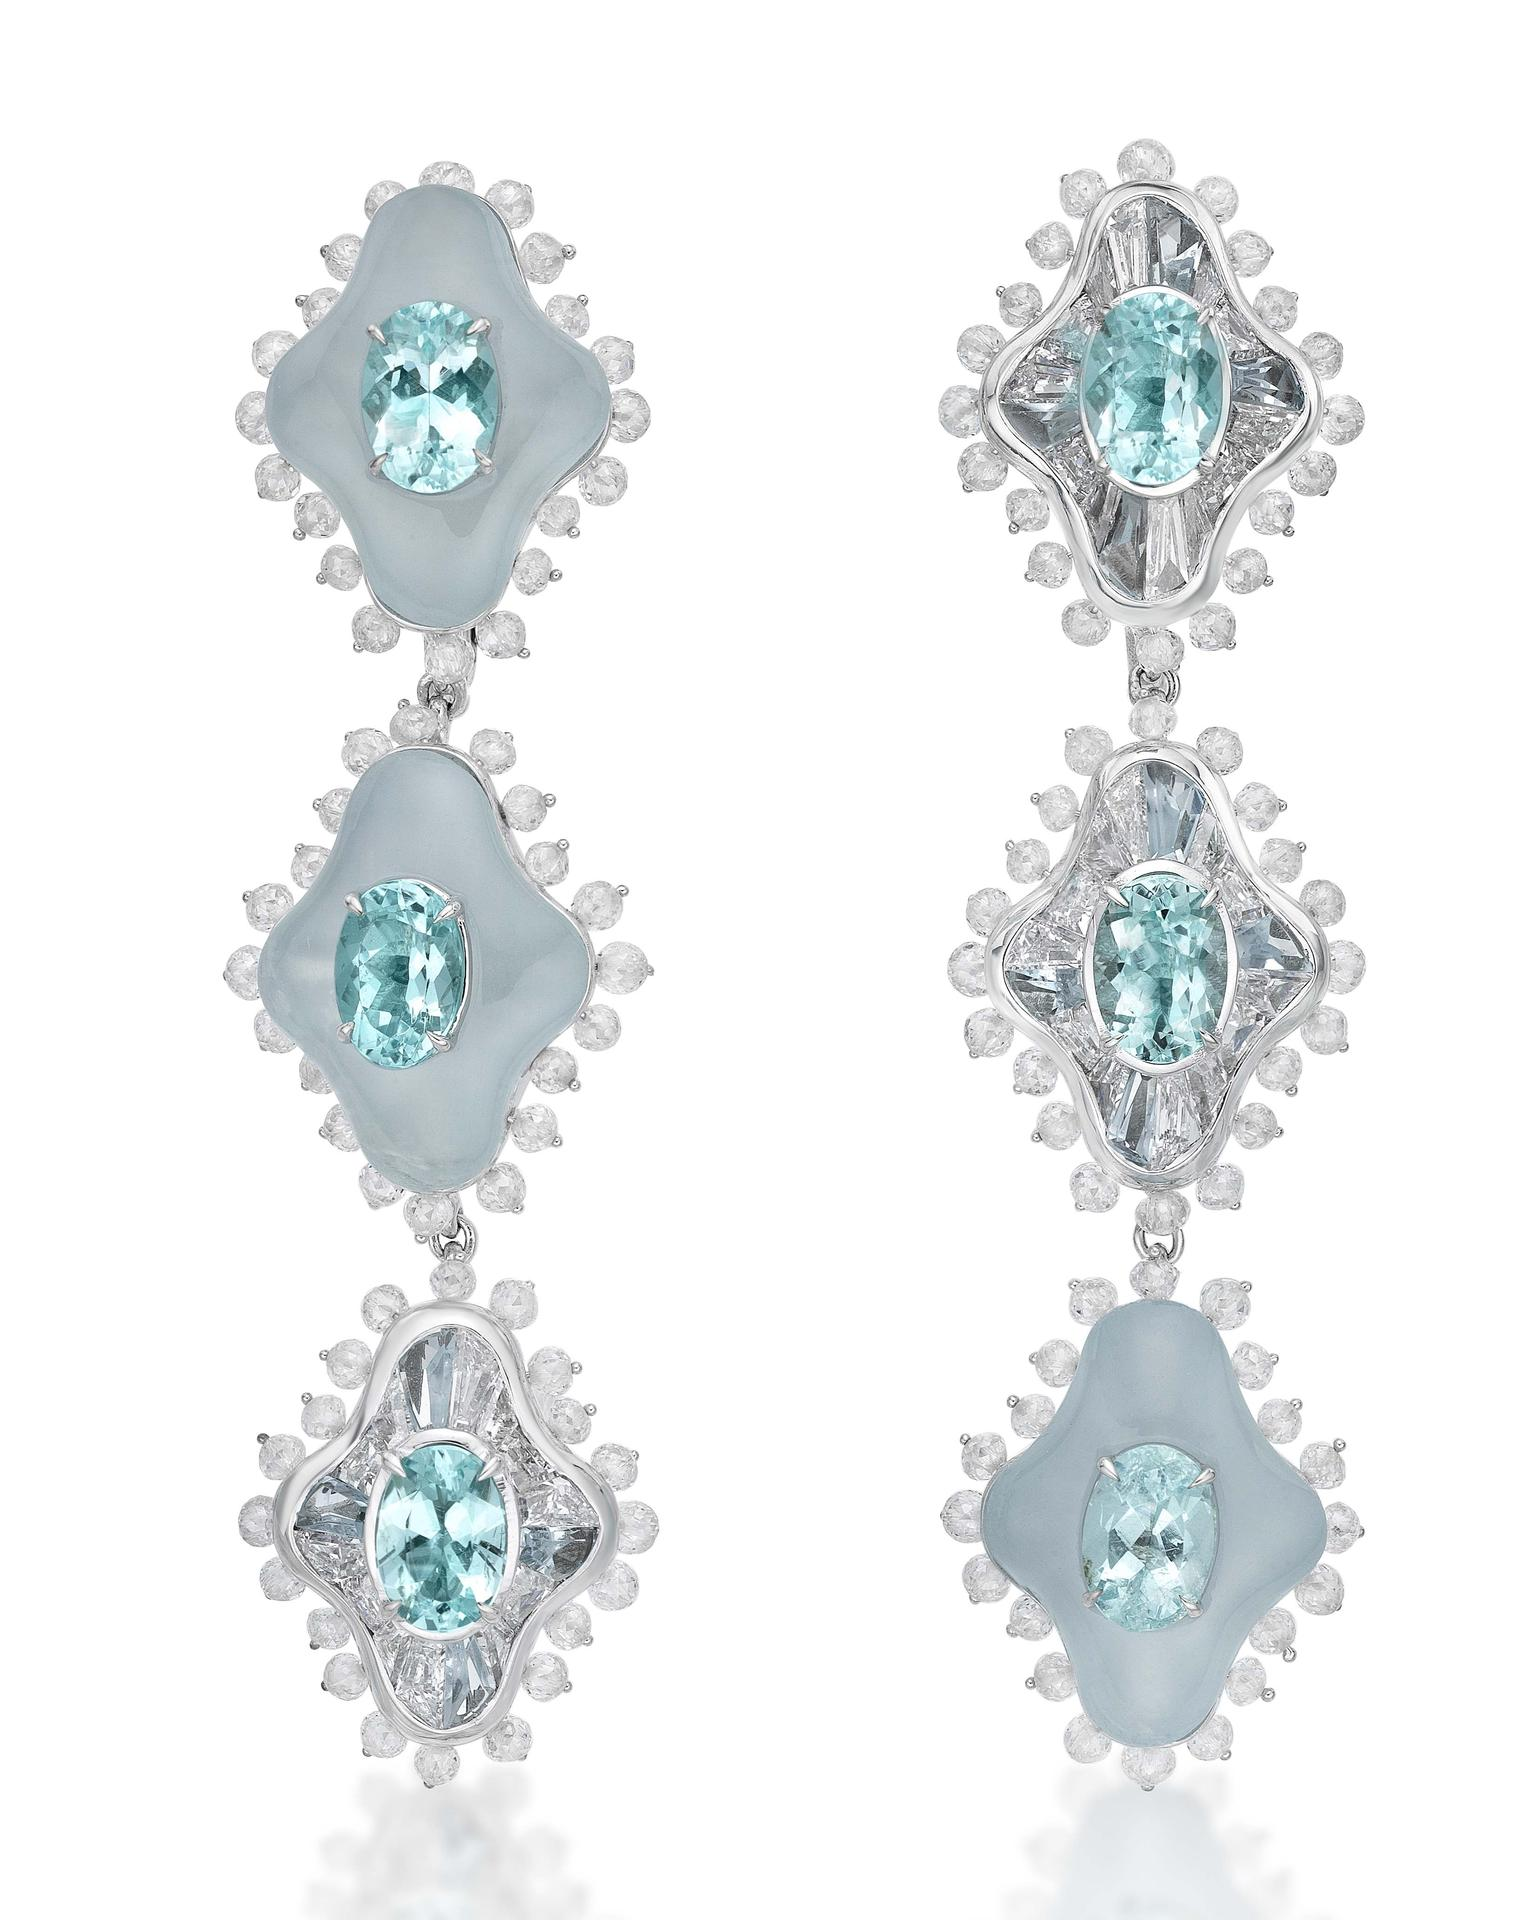 Paraiba Earrings from Sarah Ho